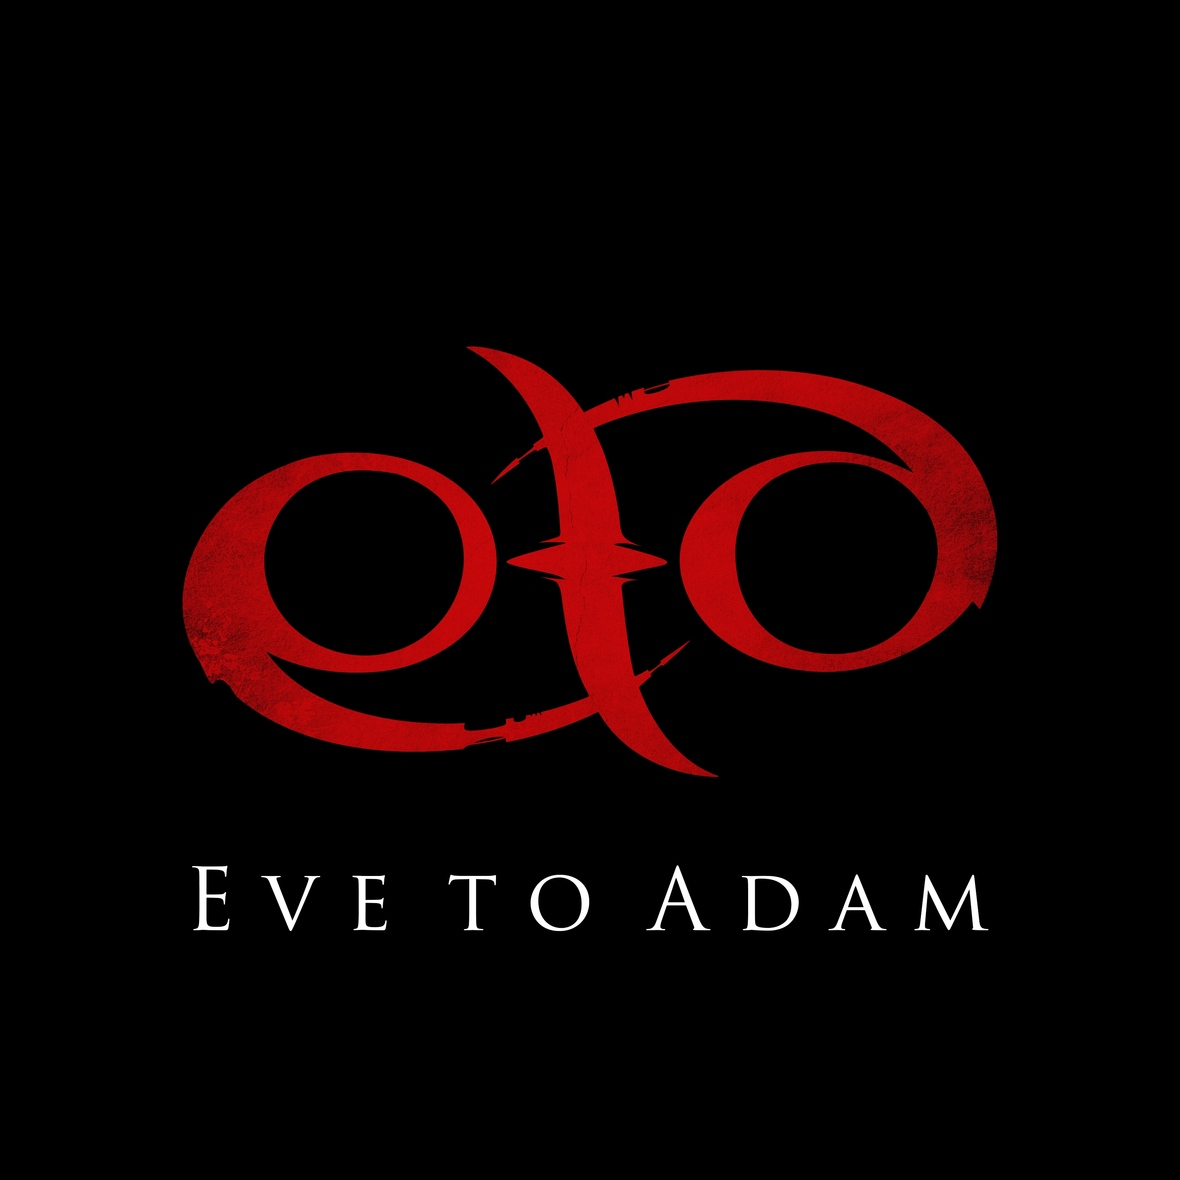 eve to adam logo update